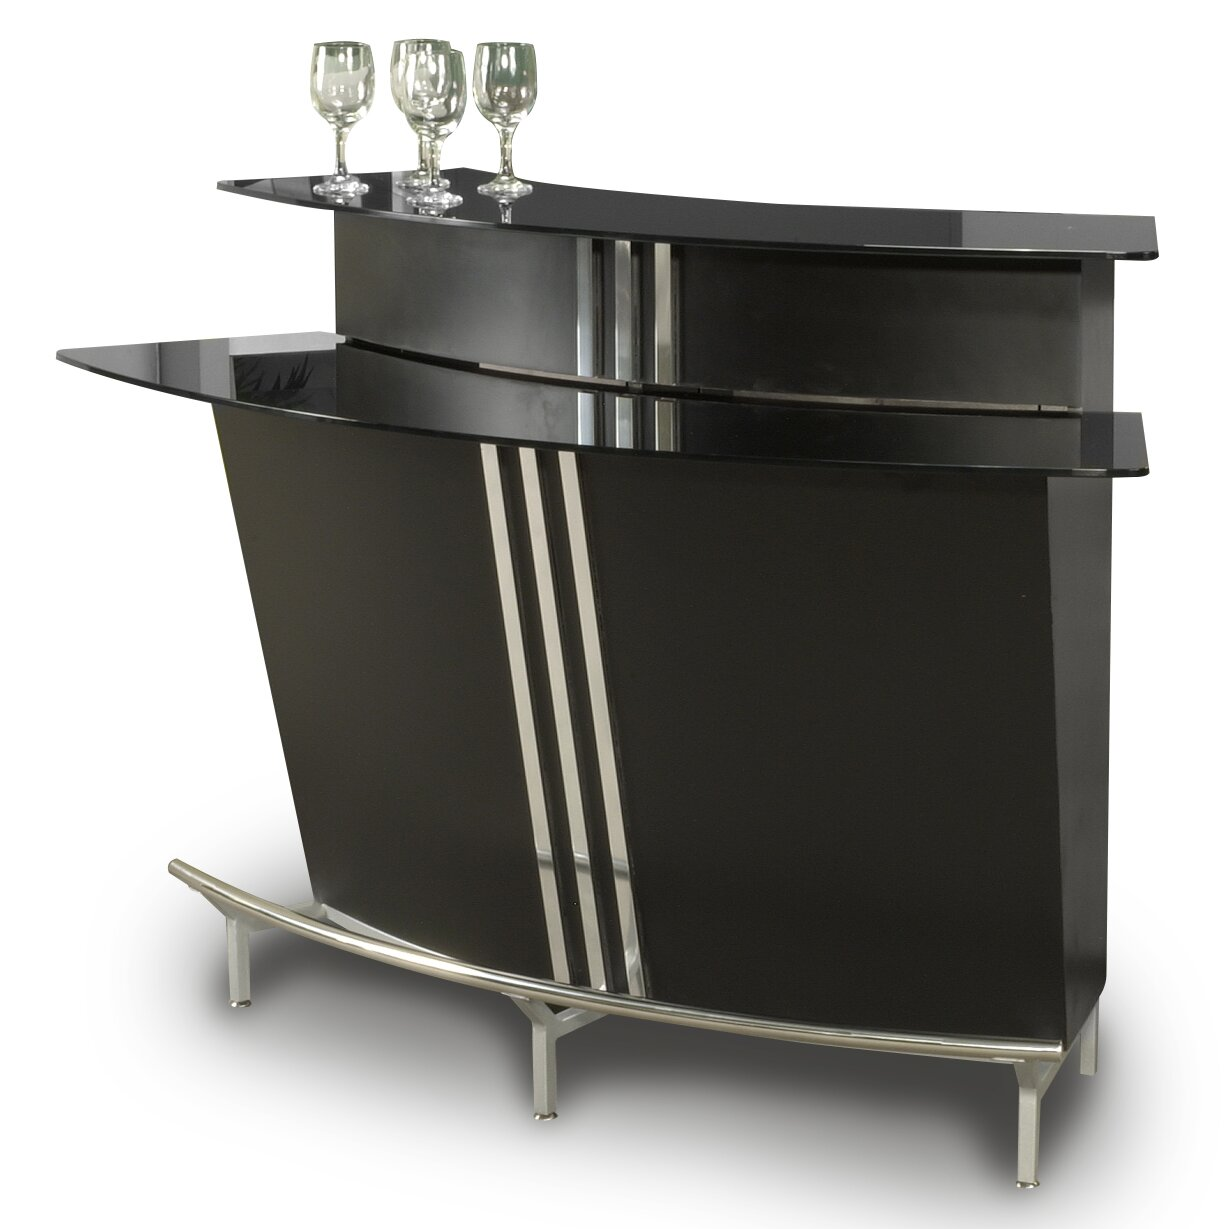 Chintaly broadway bar with wine storage reviews wayfair Home pub bar furniture